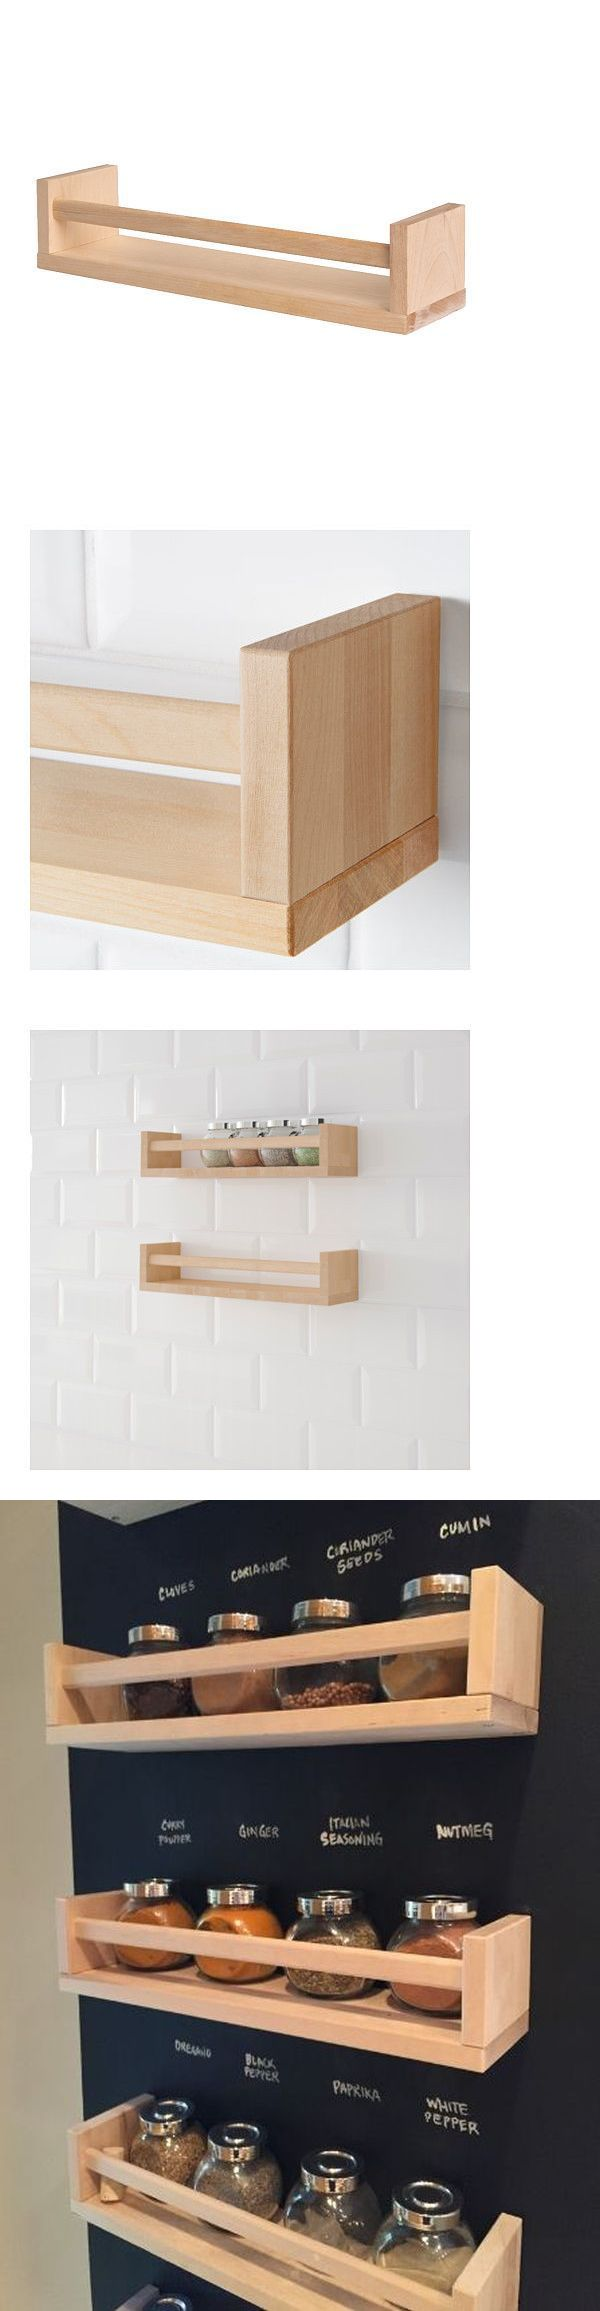 Bekvm Spice Rack The 25 Best Ikea Spice Jars Ideas On Pinterest Stacking Shelves